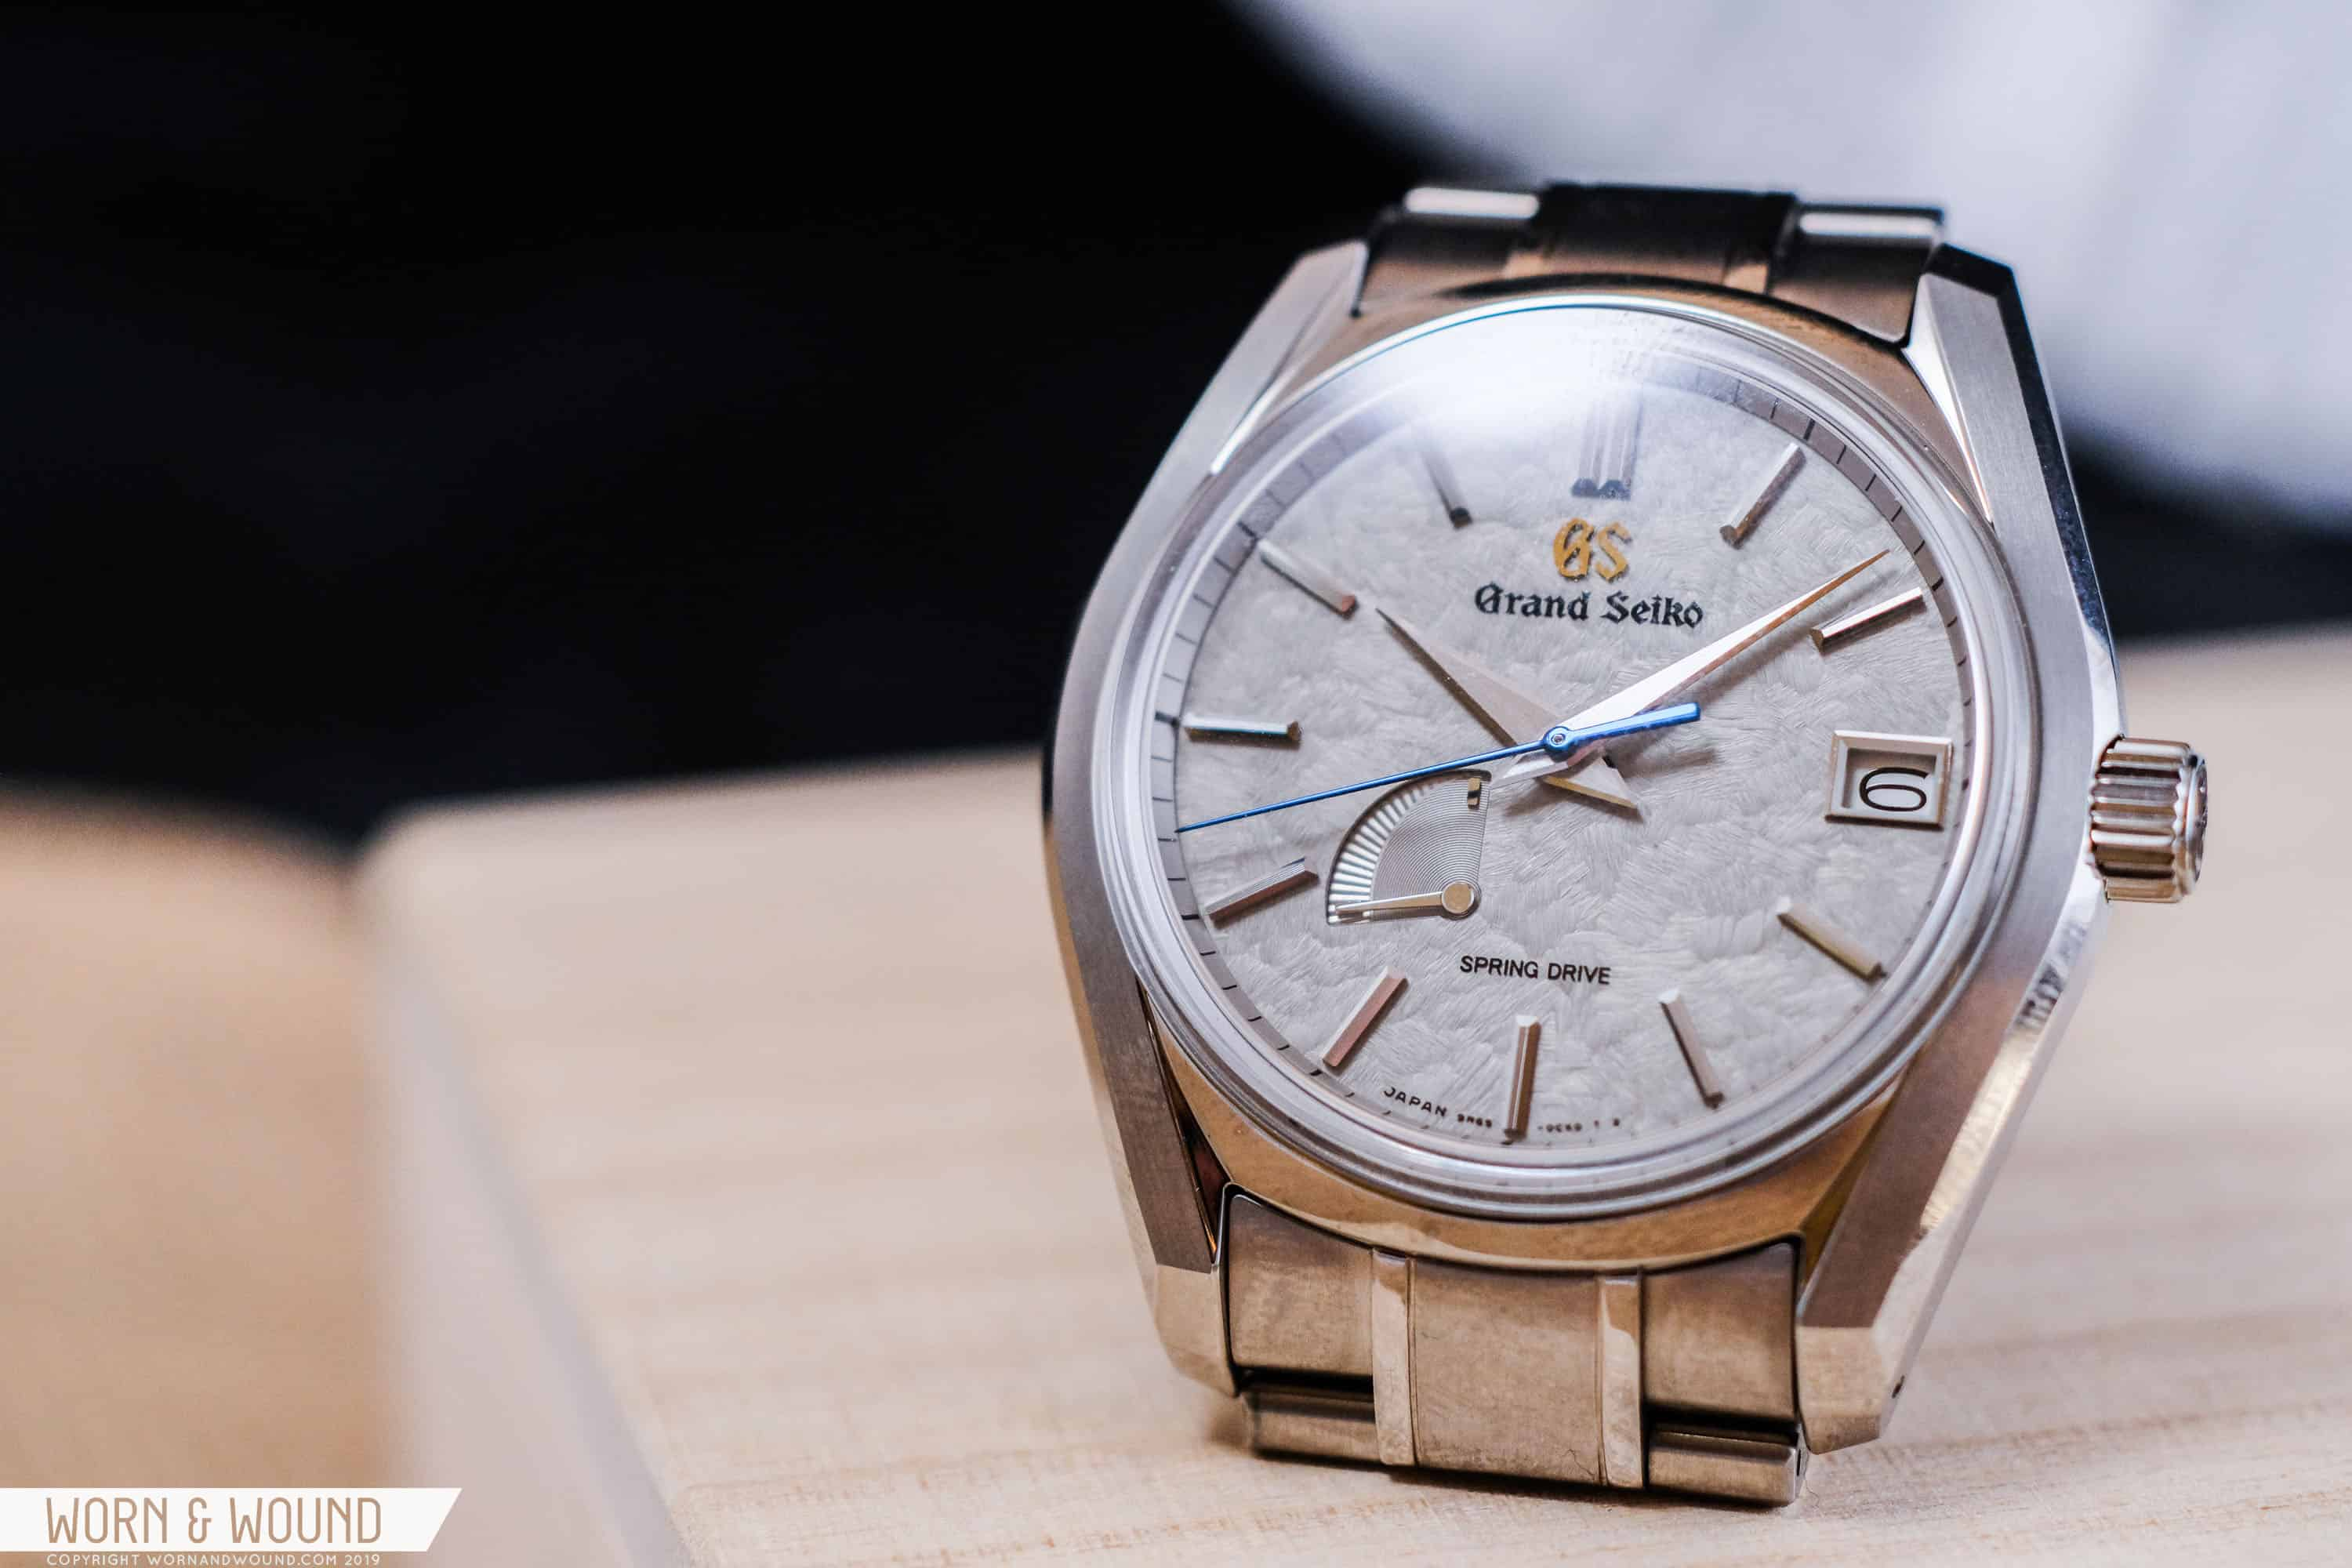 First Look at the USA-Exclusive Grand Seiko Seasons Collection (Refs. SBGH271, SBGH273, SBGA413, and SBGA415)